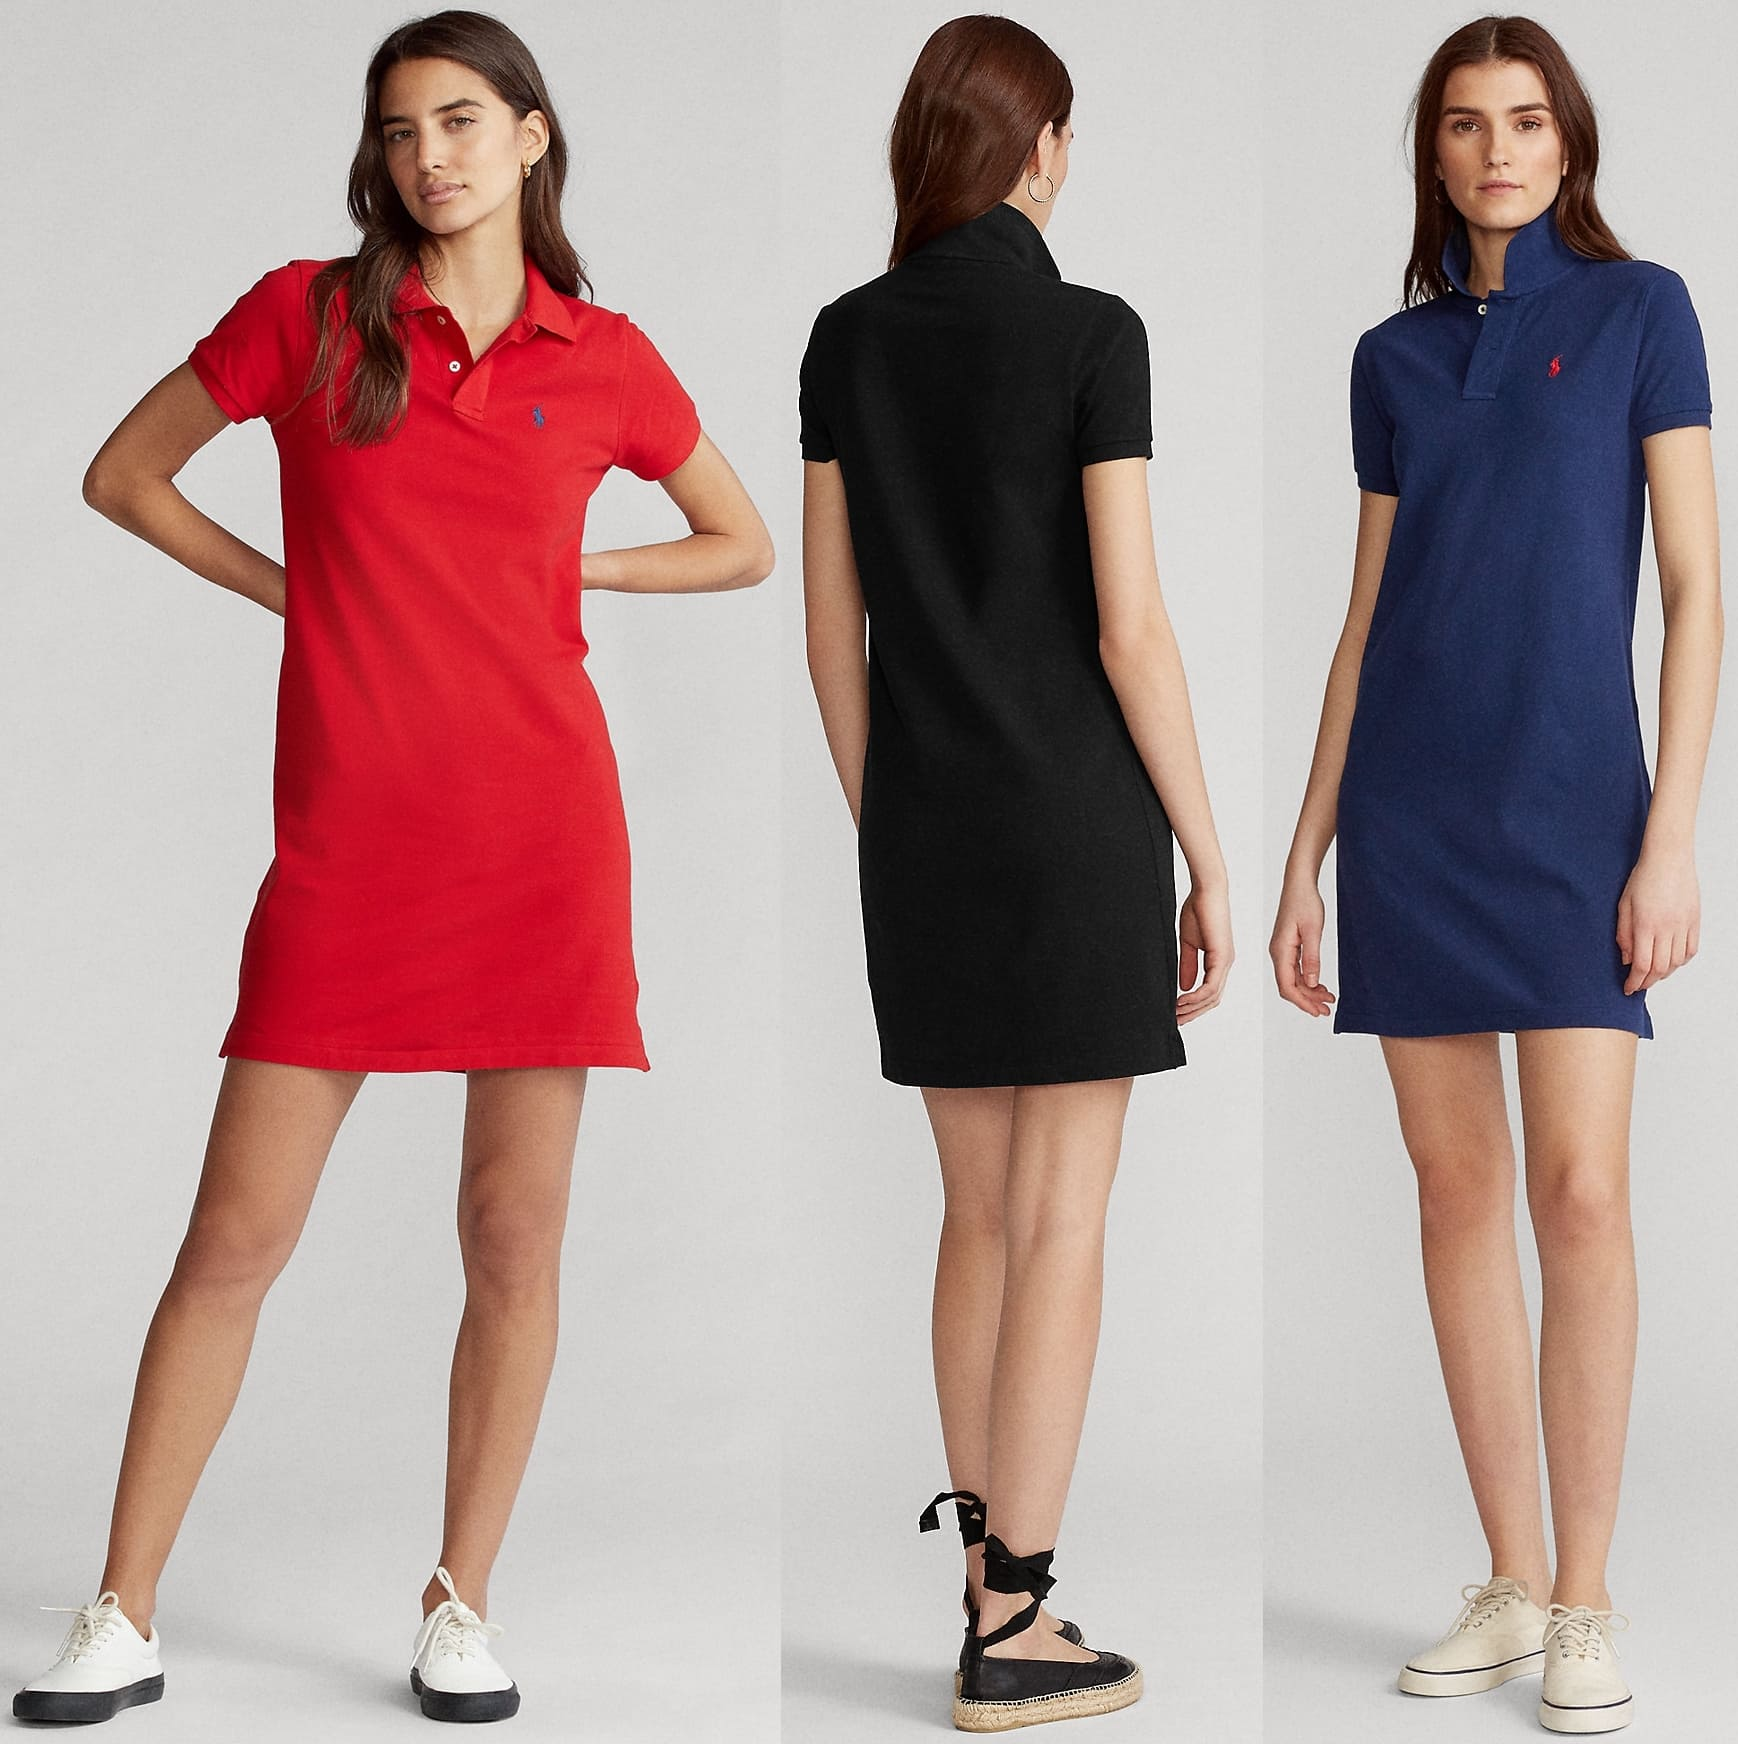 Ralph Lauren's iconic Polo shirt is reimagined for the season as a dress, cut from the same breathable cotton and finished with our signature embroidered Pony at the chest